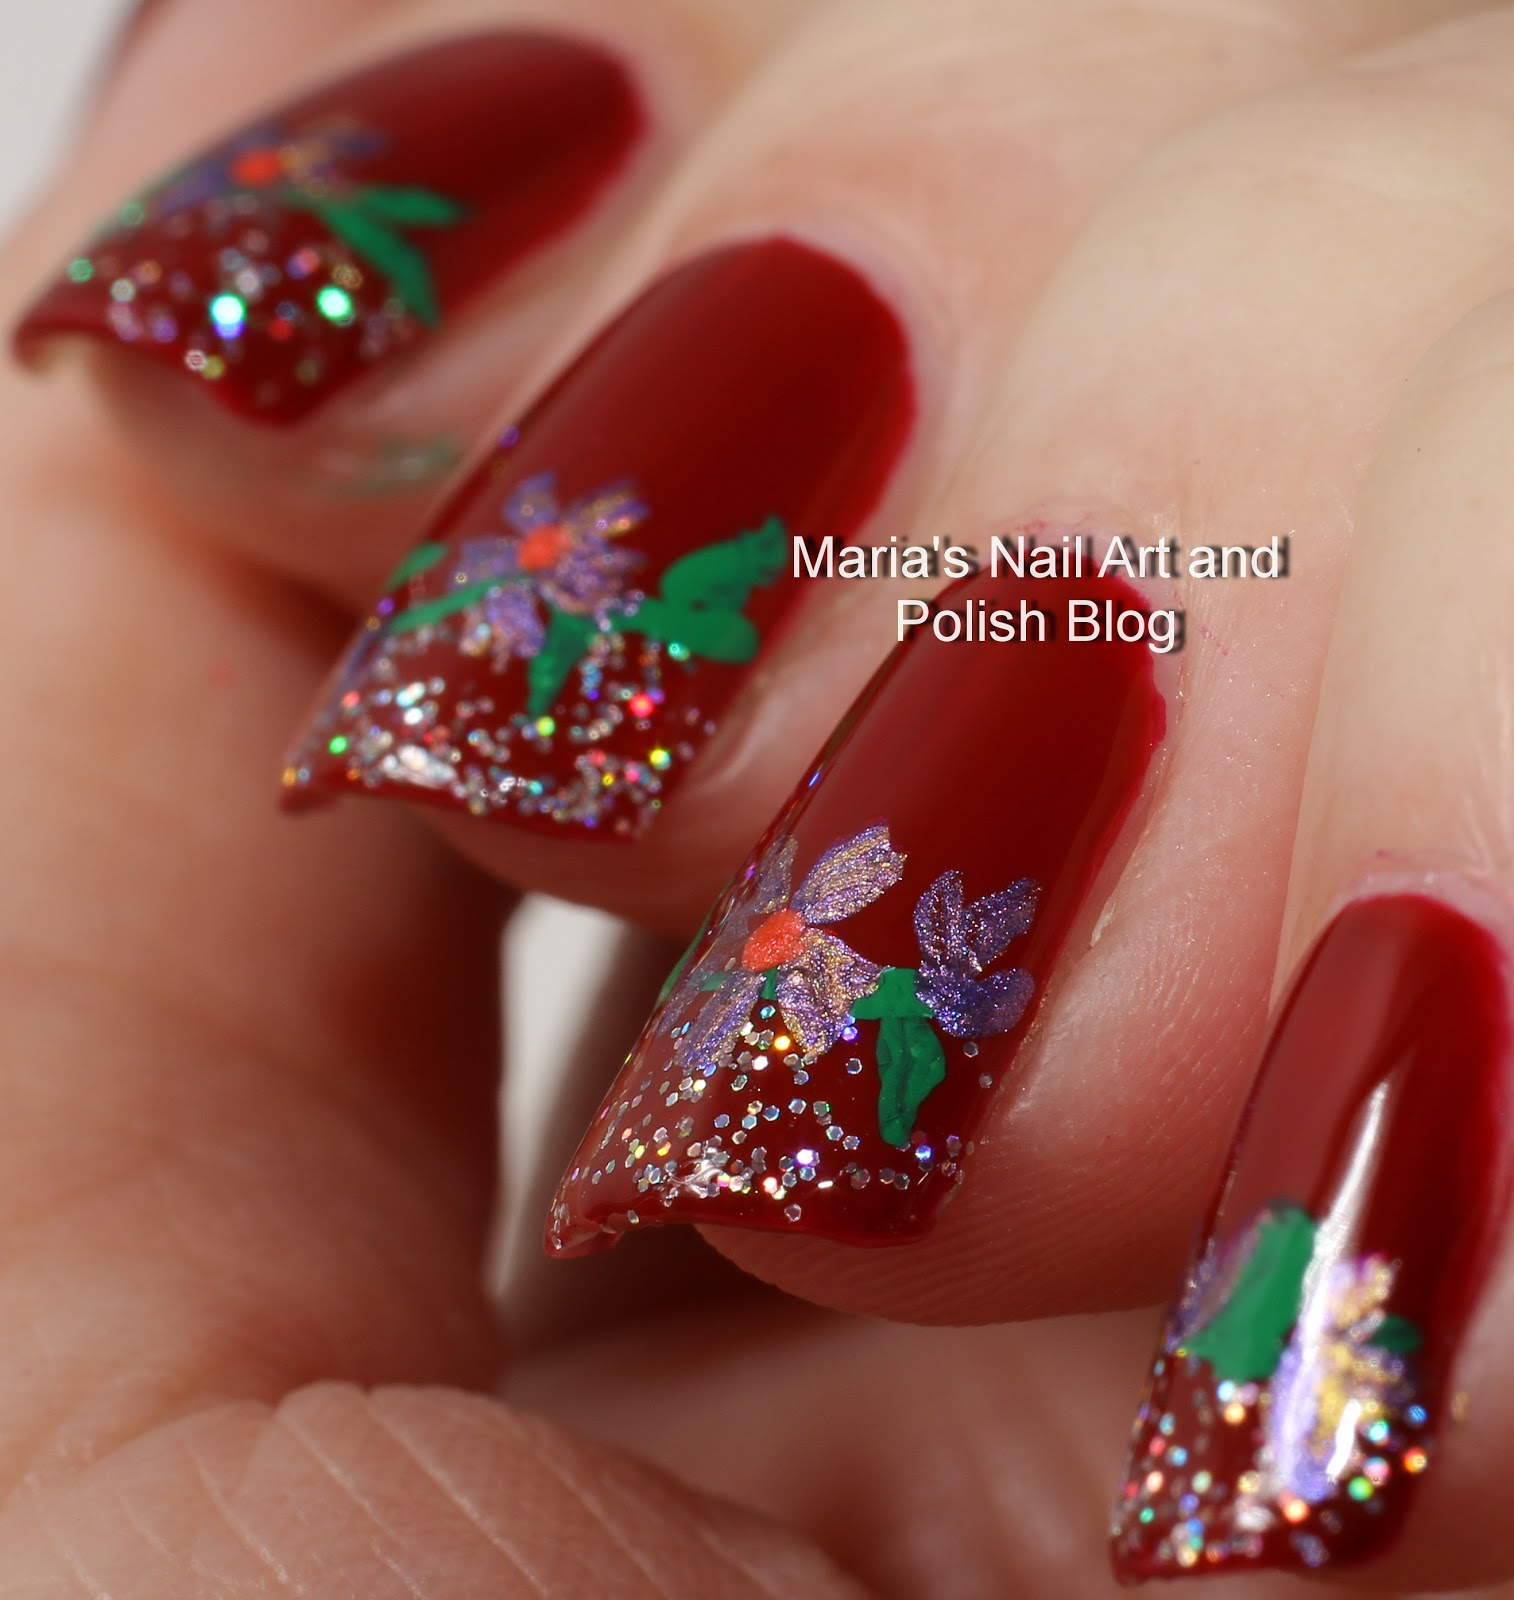 Marias Nail Art And Polish Blog Subtle Floral Nail Art On: Marias Nail Art And Polish Blog: Irresistible Flowers